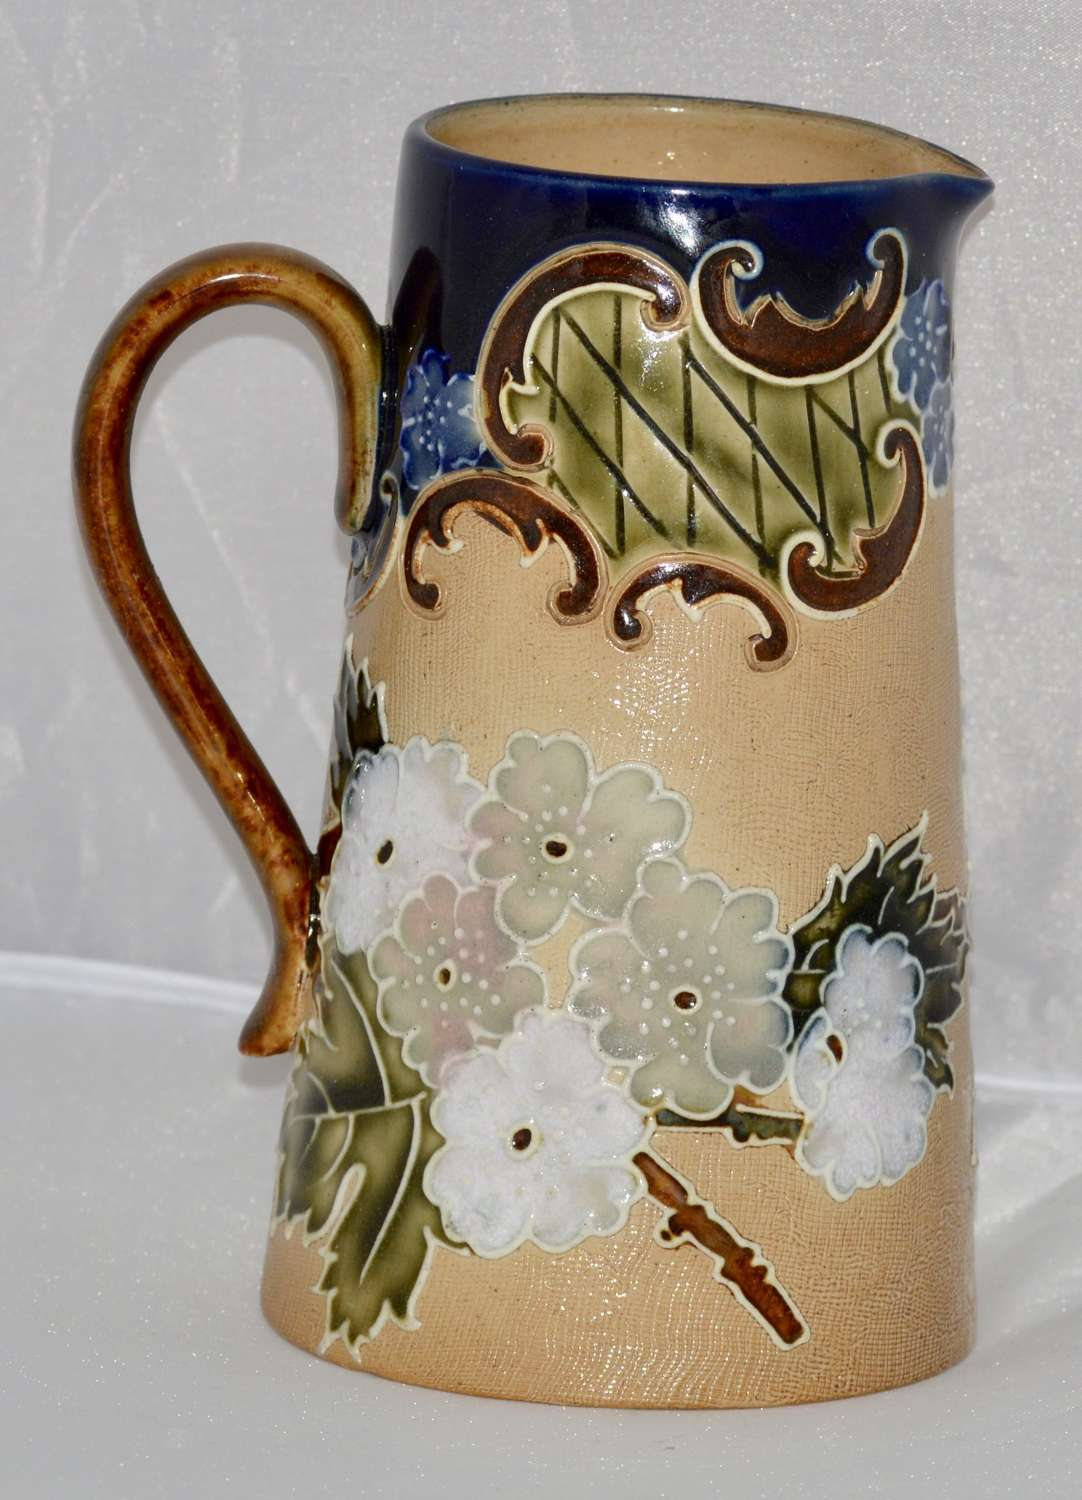 C1895 Royal Doulton Lambeth Stoneware Tall Jug - Slaters Floral Design